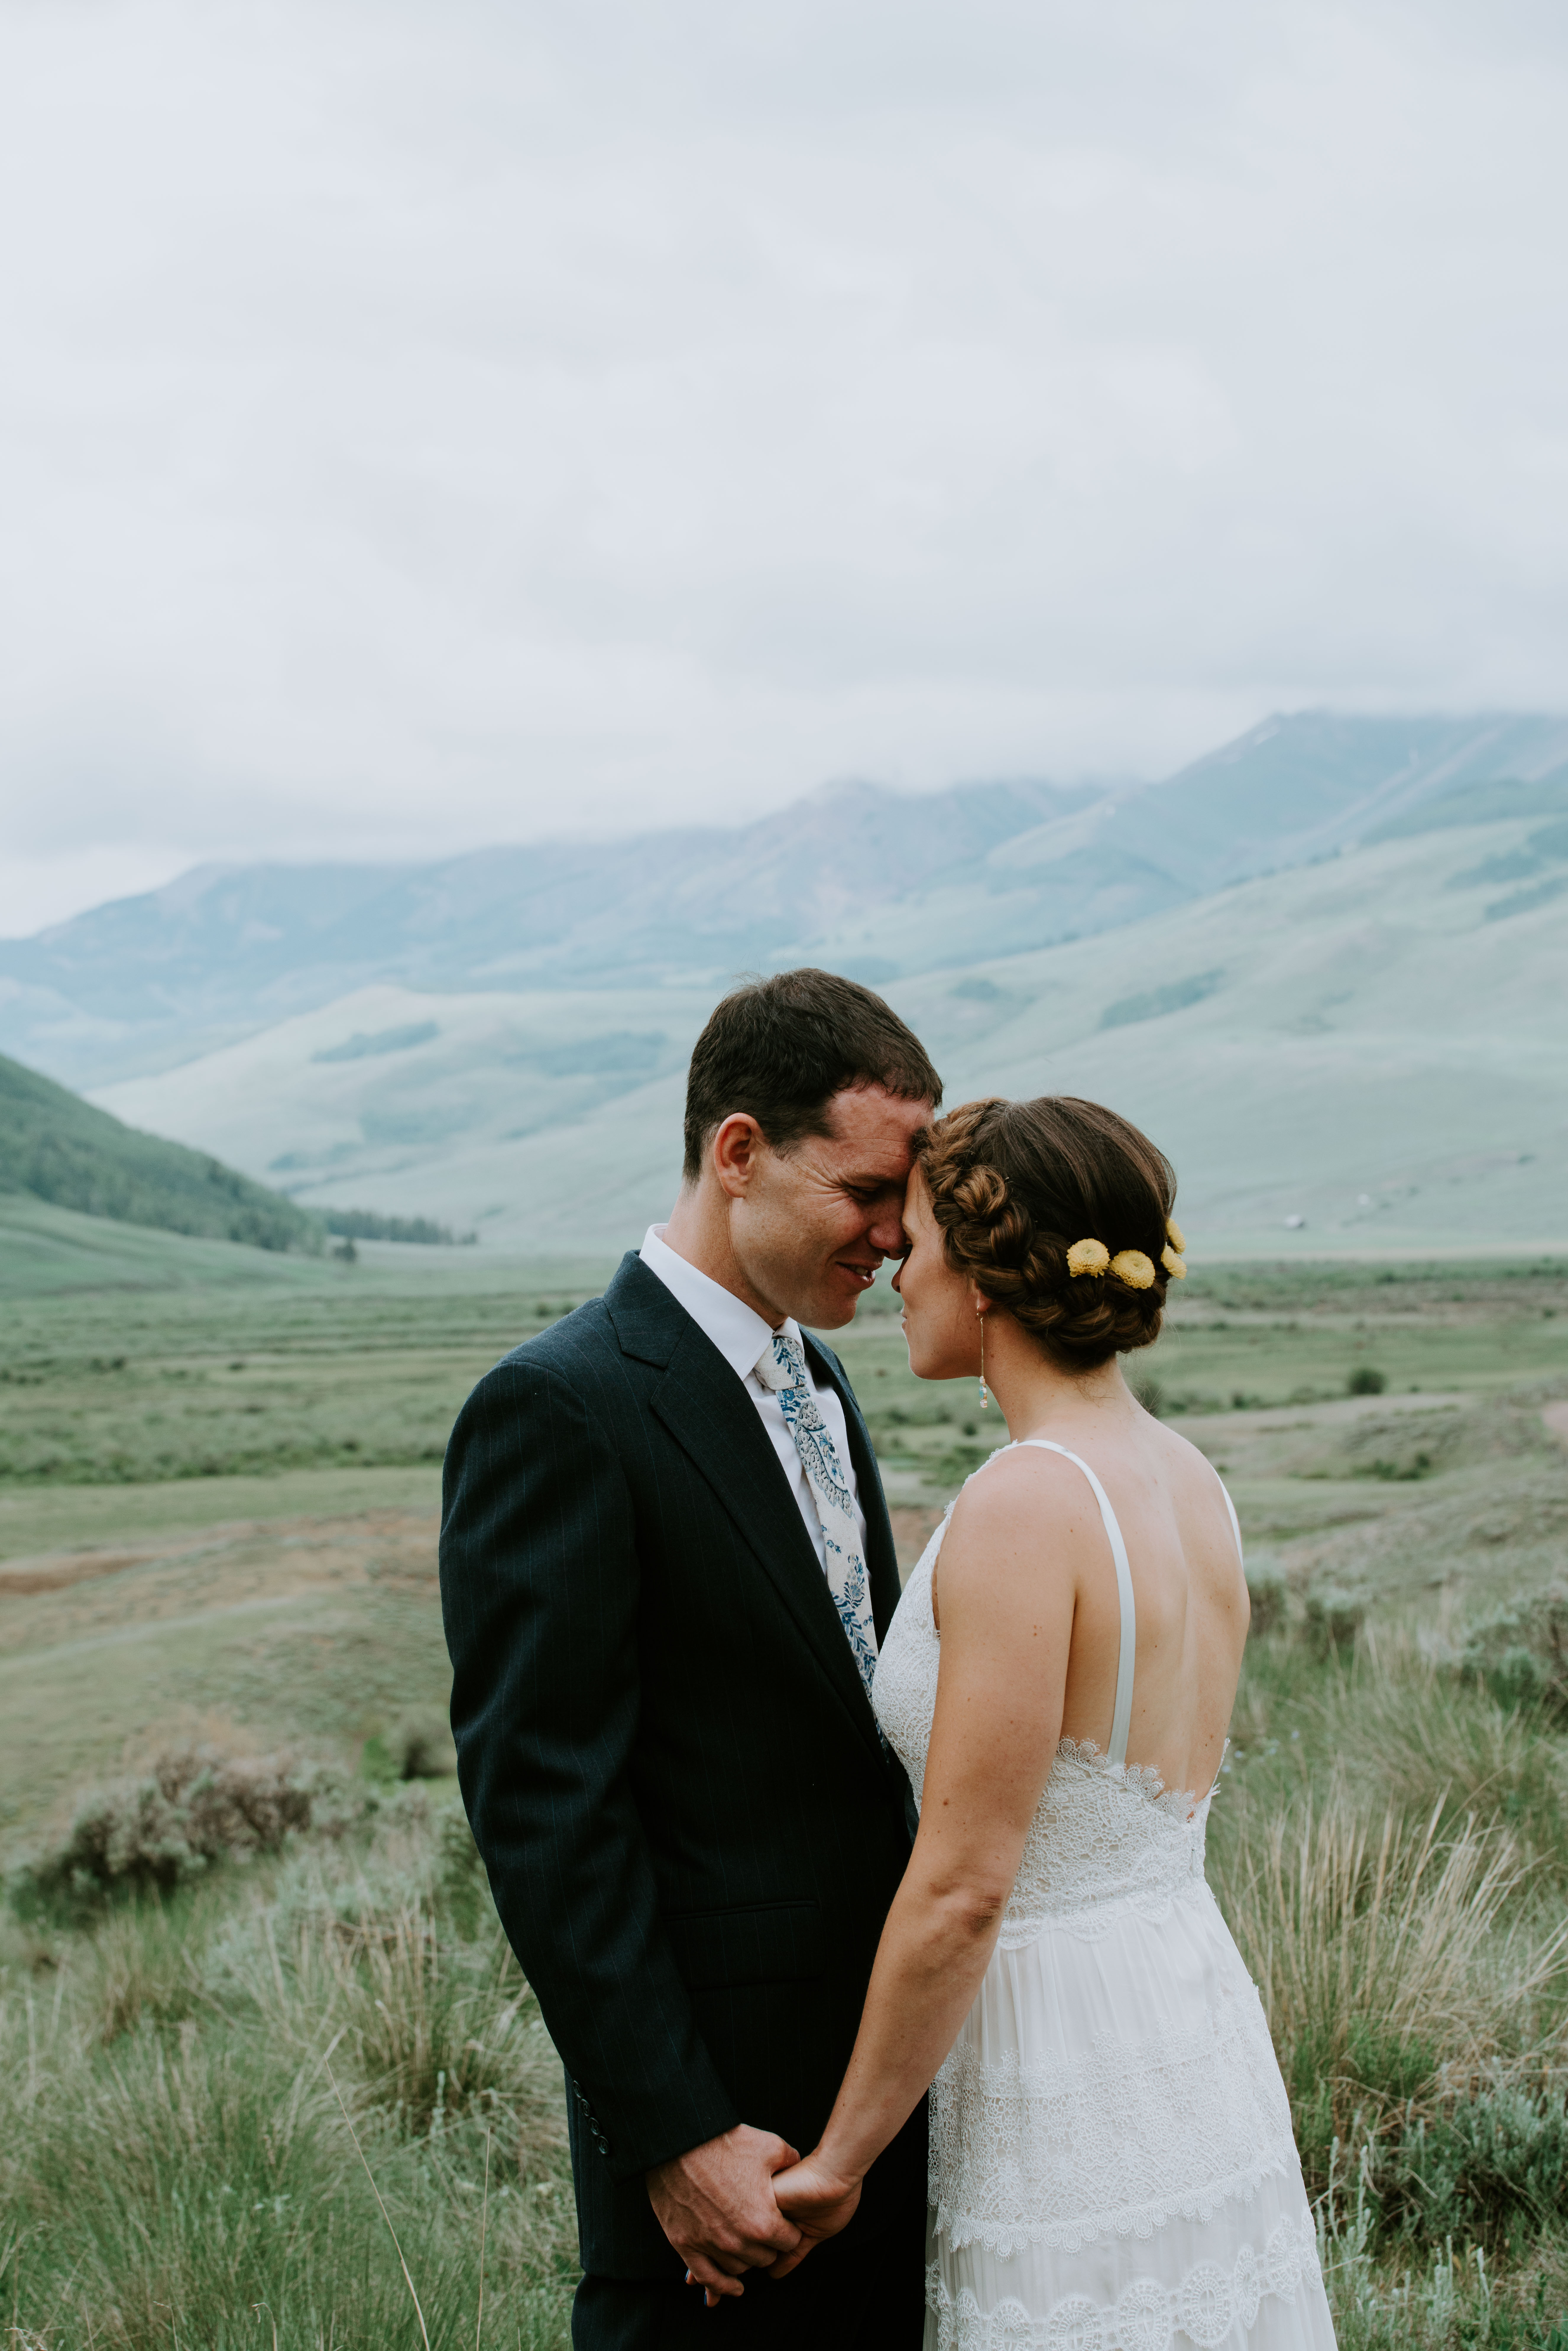 Laura_Alexe_Wedding_Crested_Butte_MegONeillPhotography__180616_49